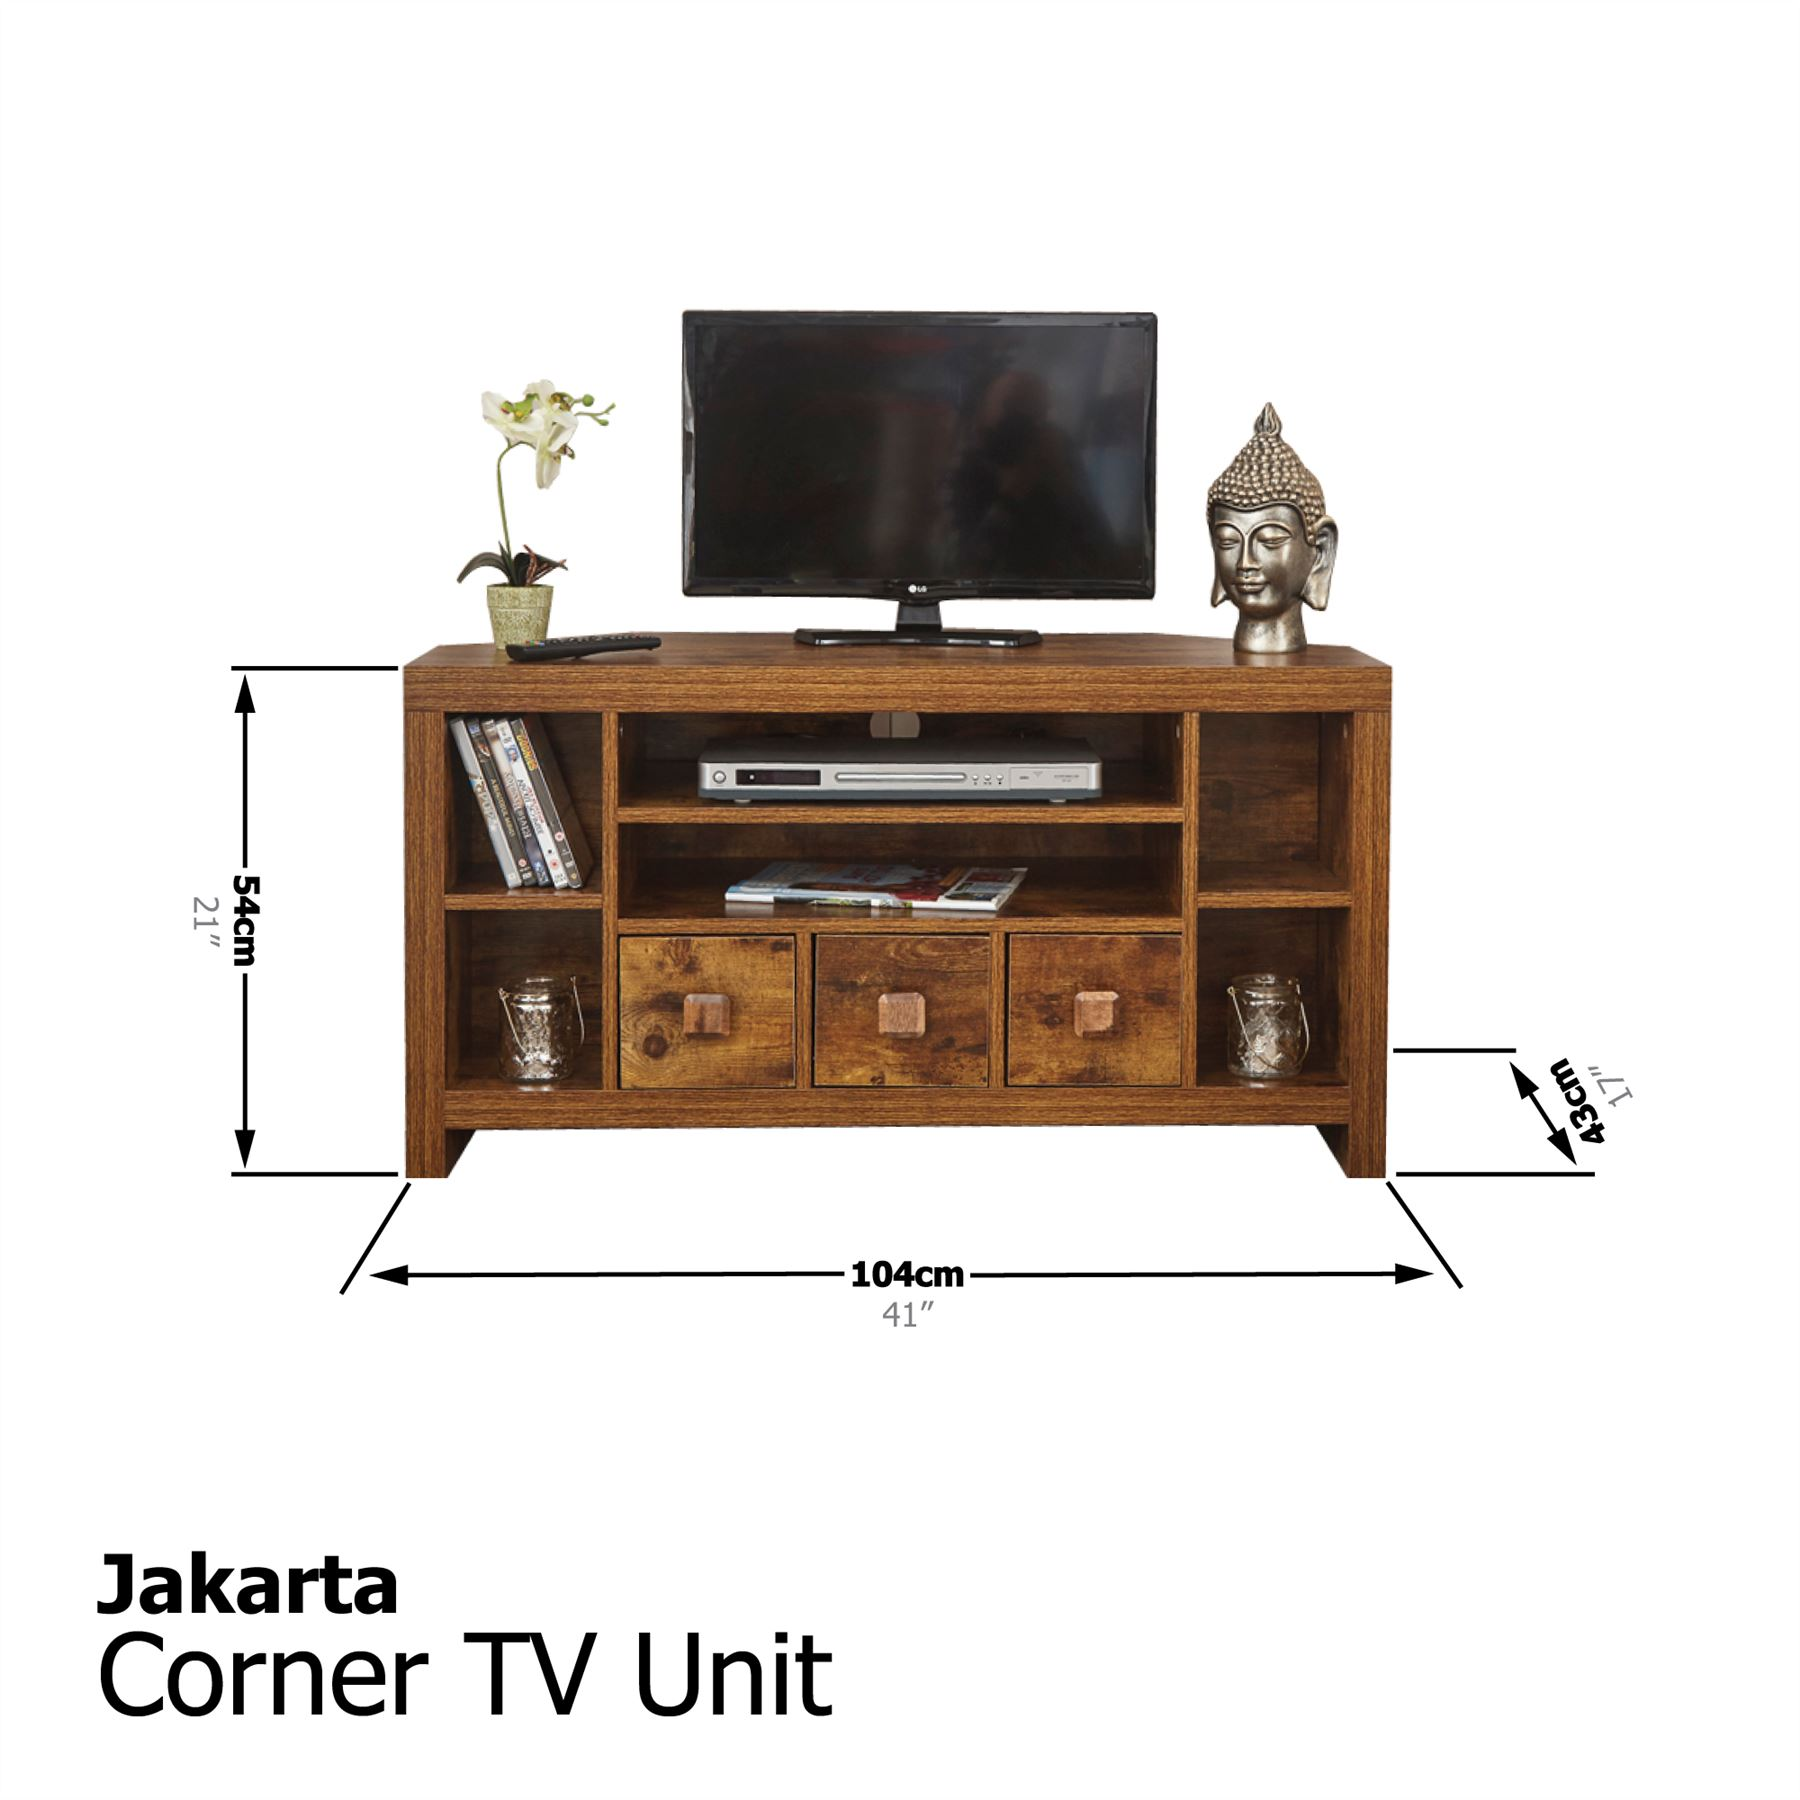 JAKARTA MANGO LIVING ROOM NEST TABLE SLIM DRAWERS TV UNIT CUBE